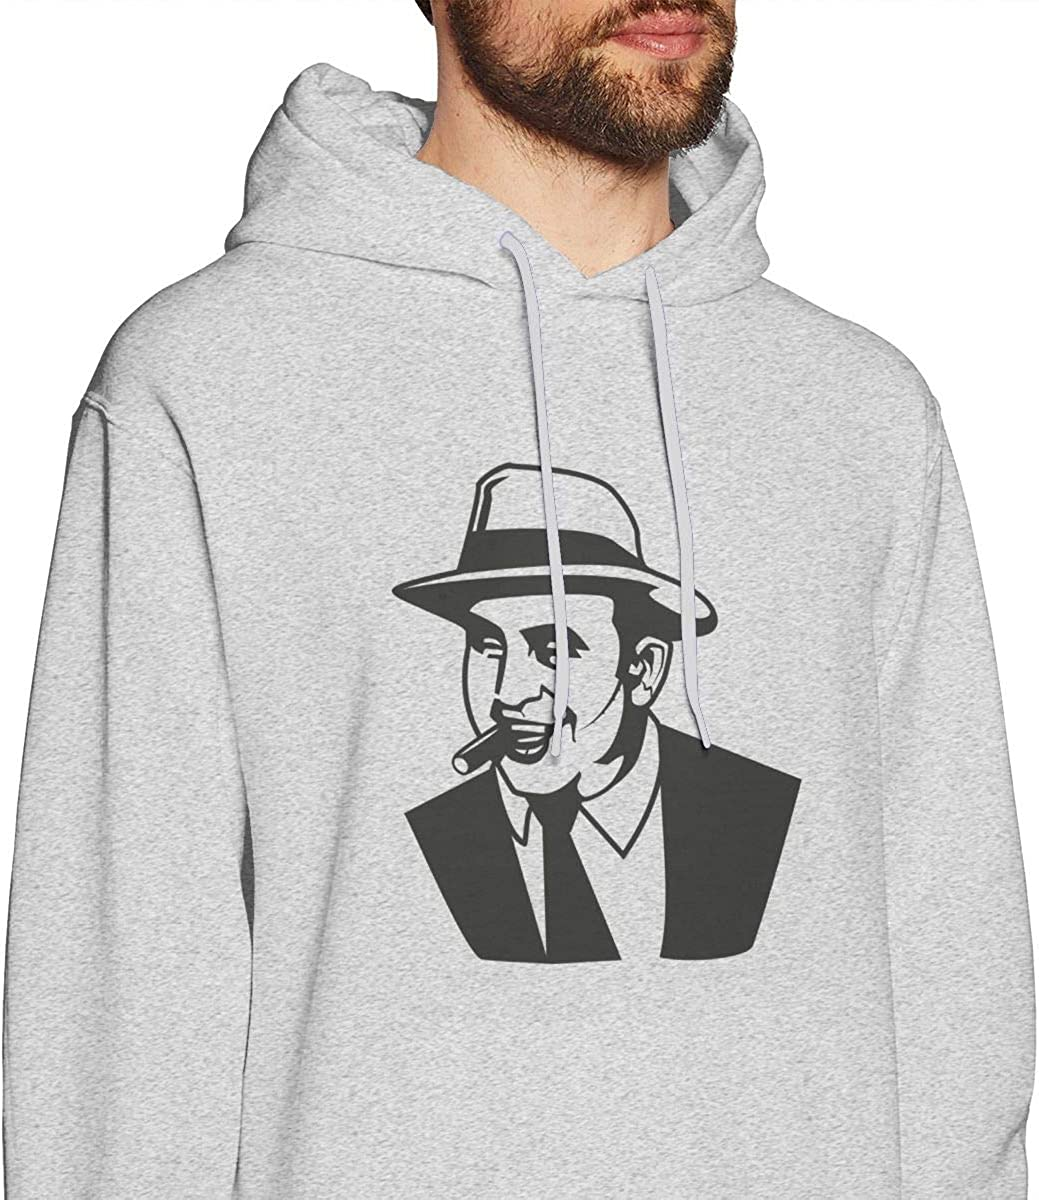 Whiteandnavy Warmth Mens Al Capone 3 Sweater Gray with Mens Hoodies